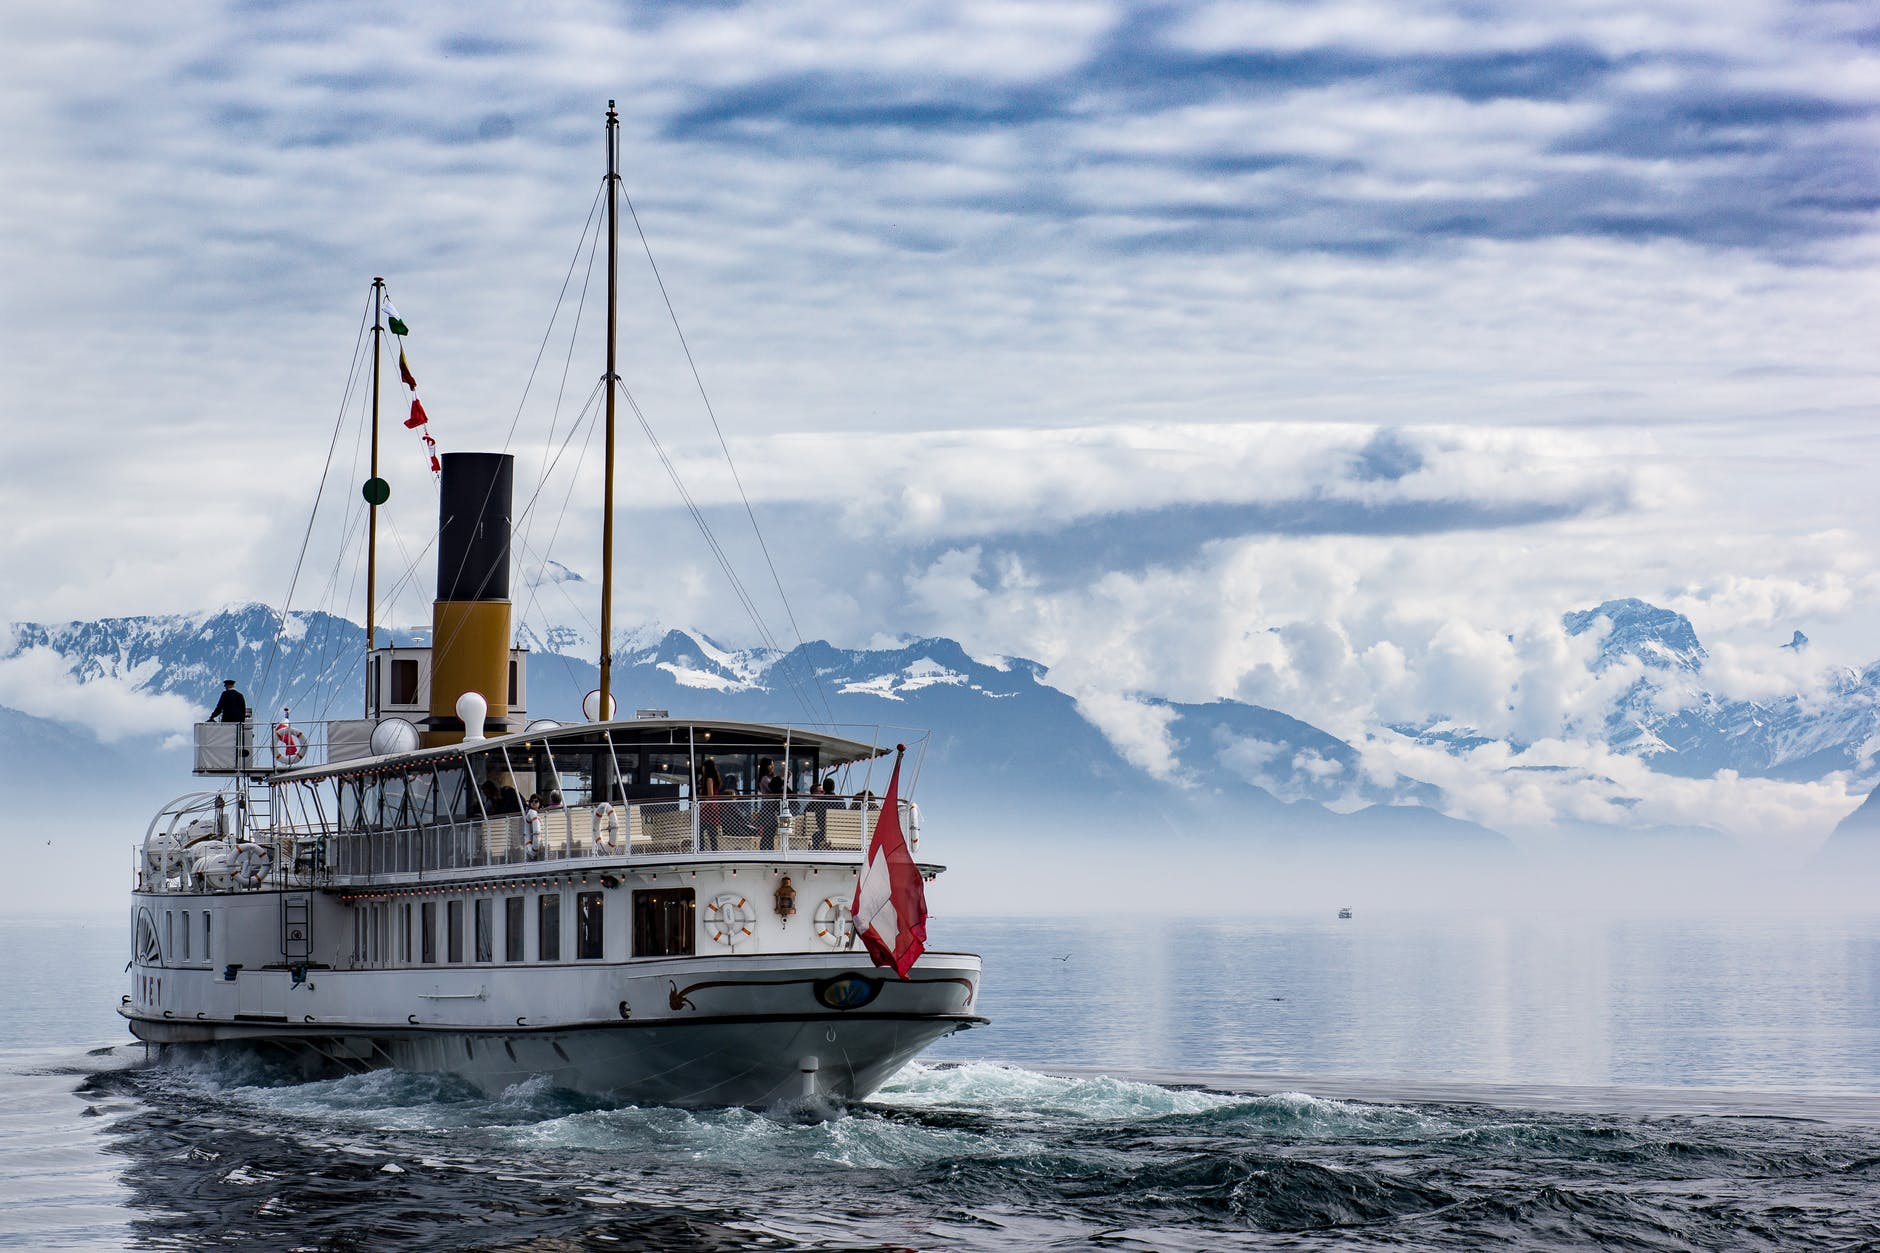 Ship stores own CO2 emissions while sailing